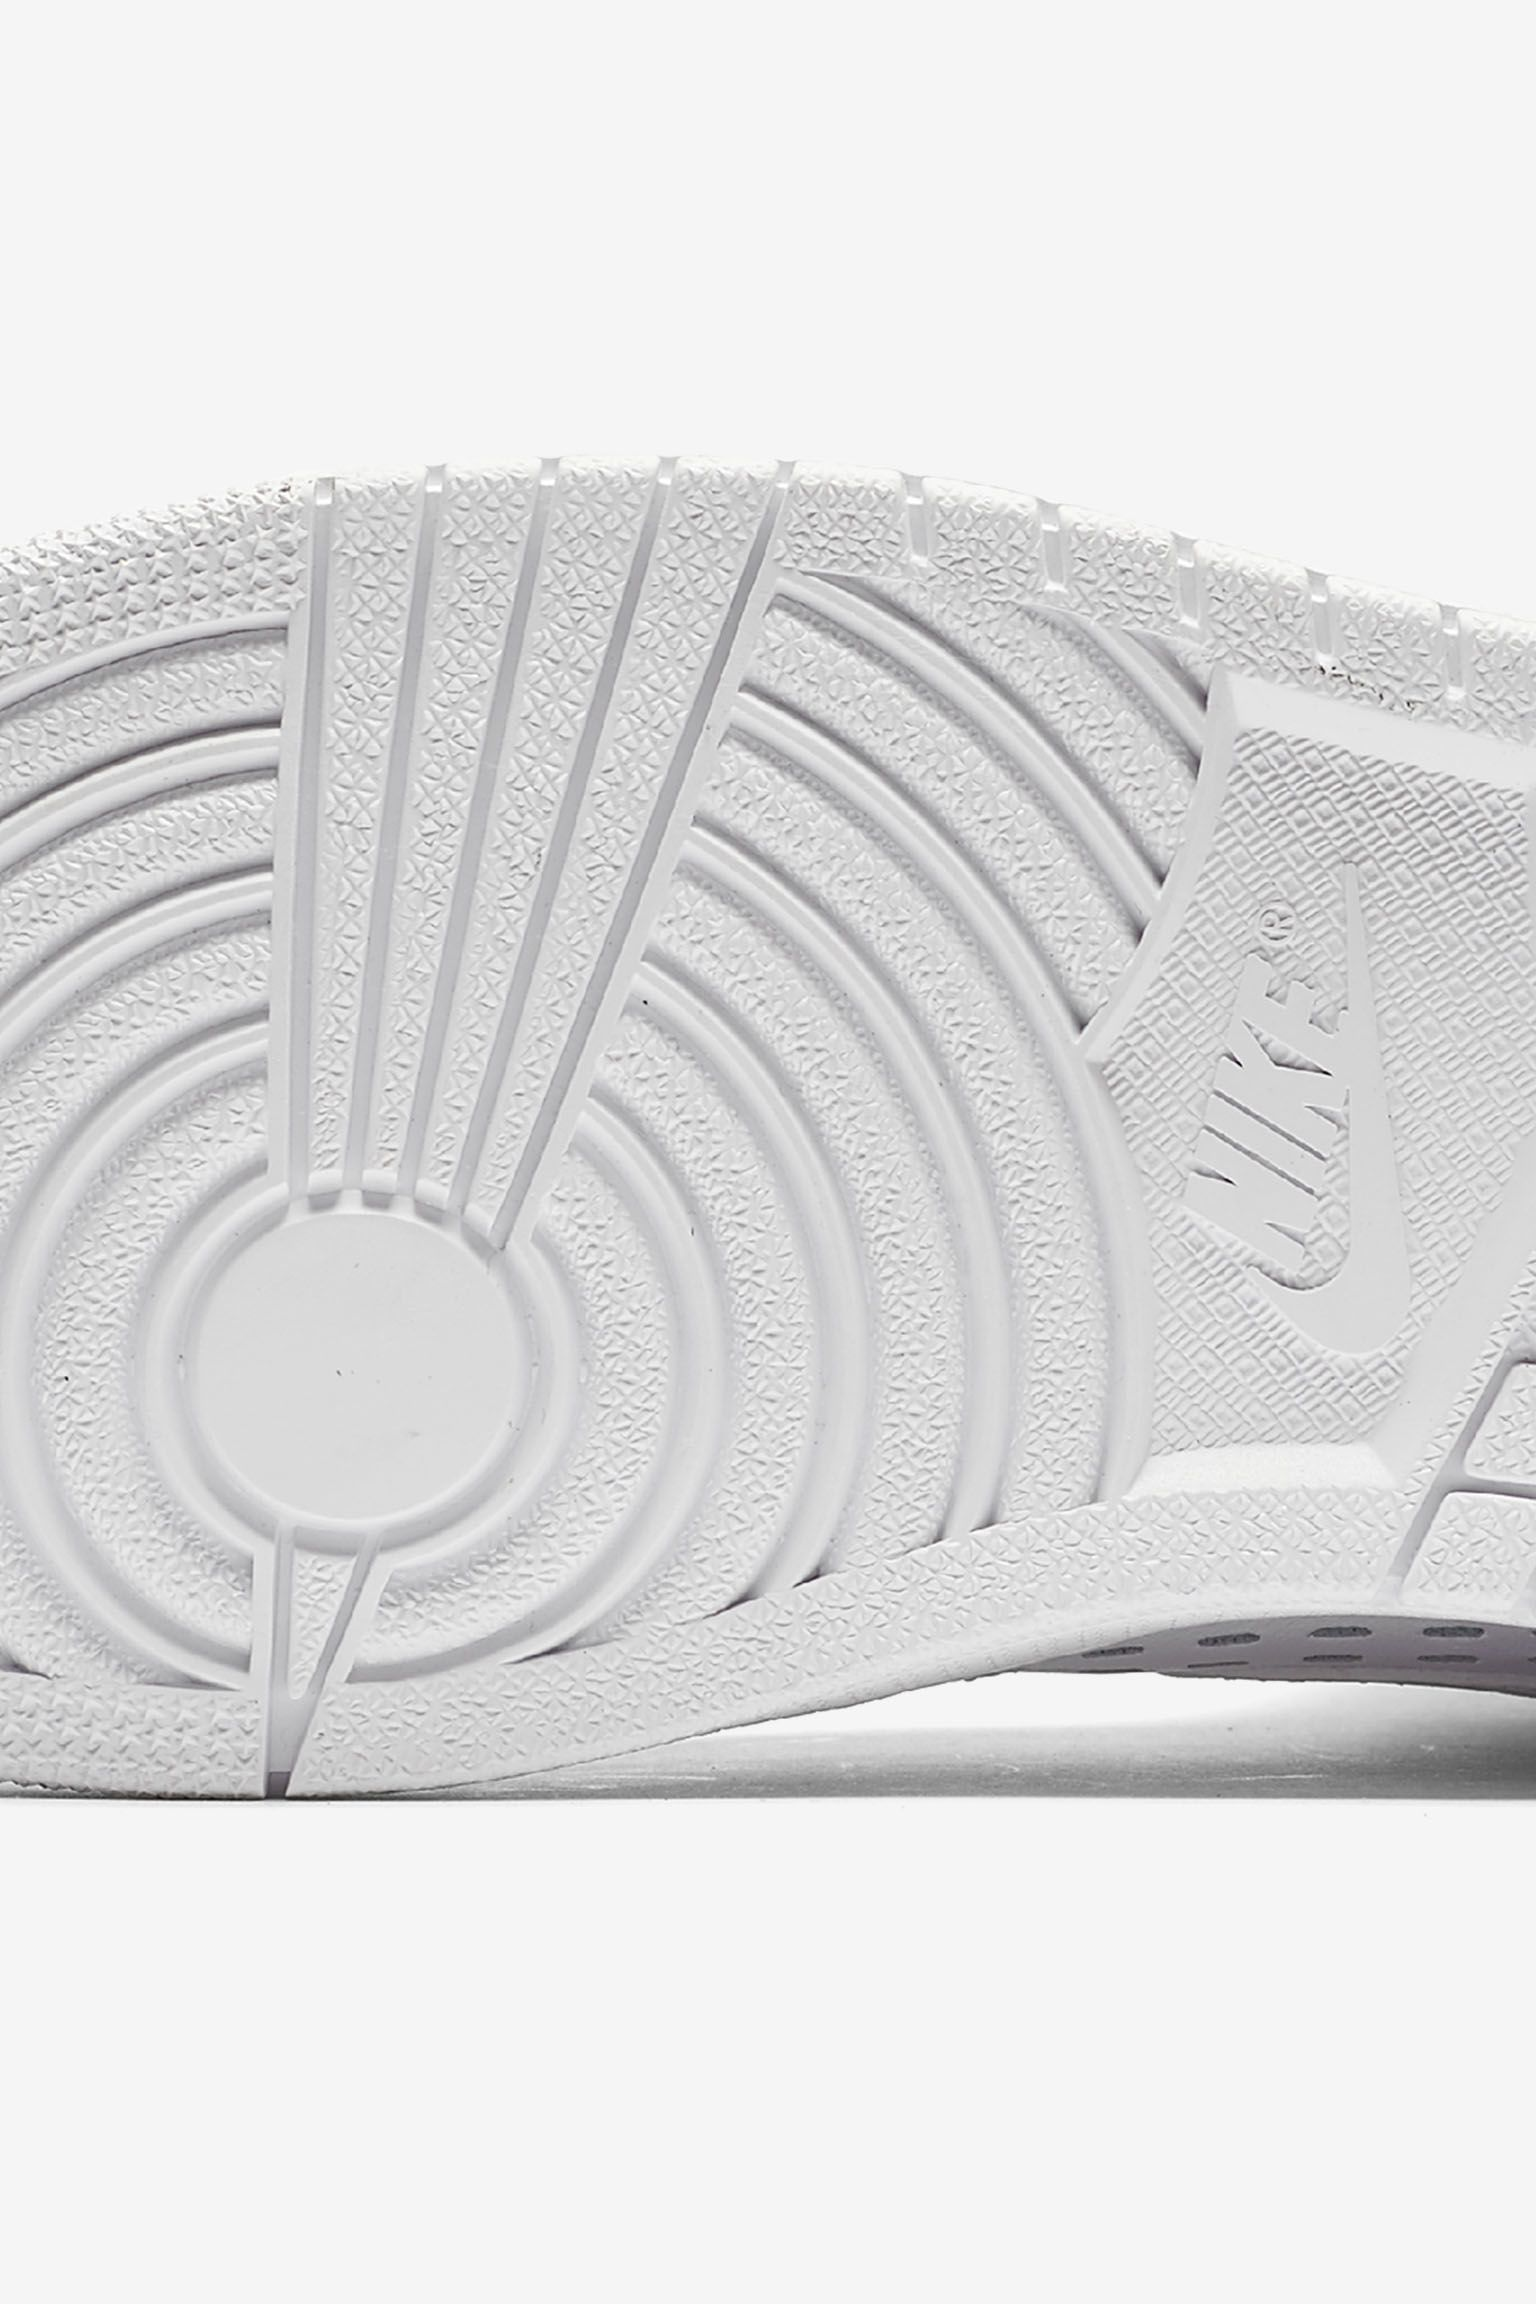 Air Jordan 1 Retro 'Engineered Perf' White Release Date